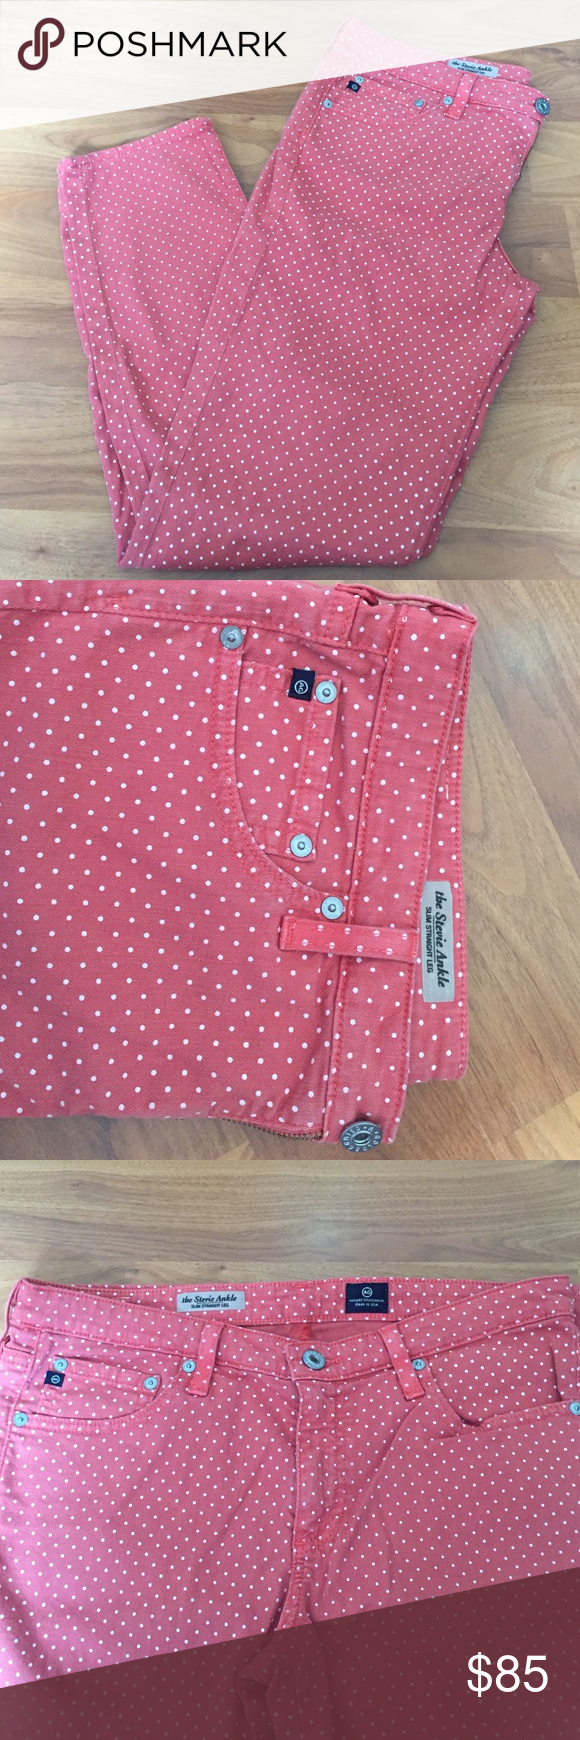 AG Stevie Ankle Pink Dot Jeans Adriano Goldschmied AG Stevie Ankle Slim Straight Leg pink dot jeans size 30R. I think I wore these once! They're adorable, but now too big :( perfect condition! Trades considered! AG Adriano Goldschmied Jeans Ankle & Cropped